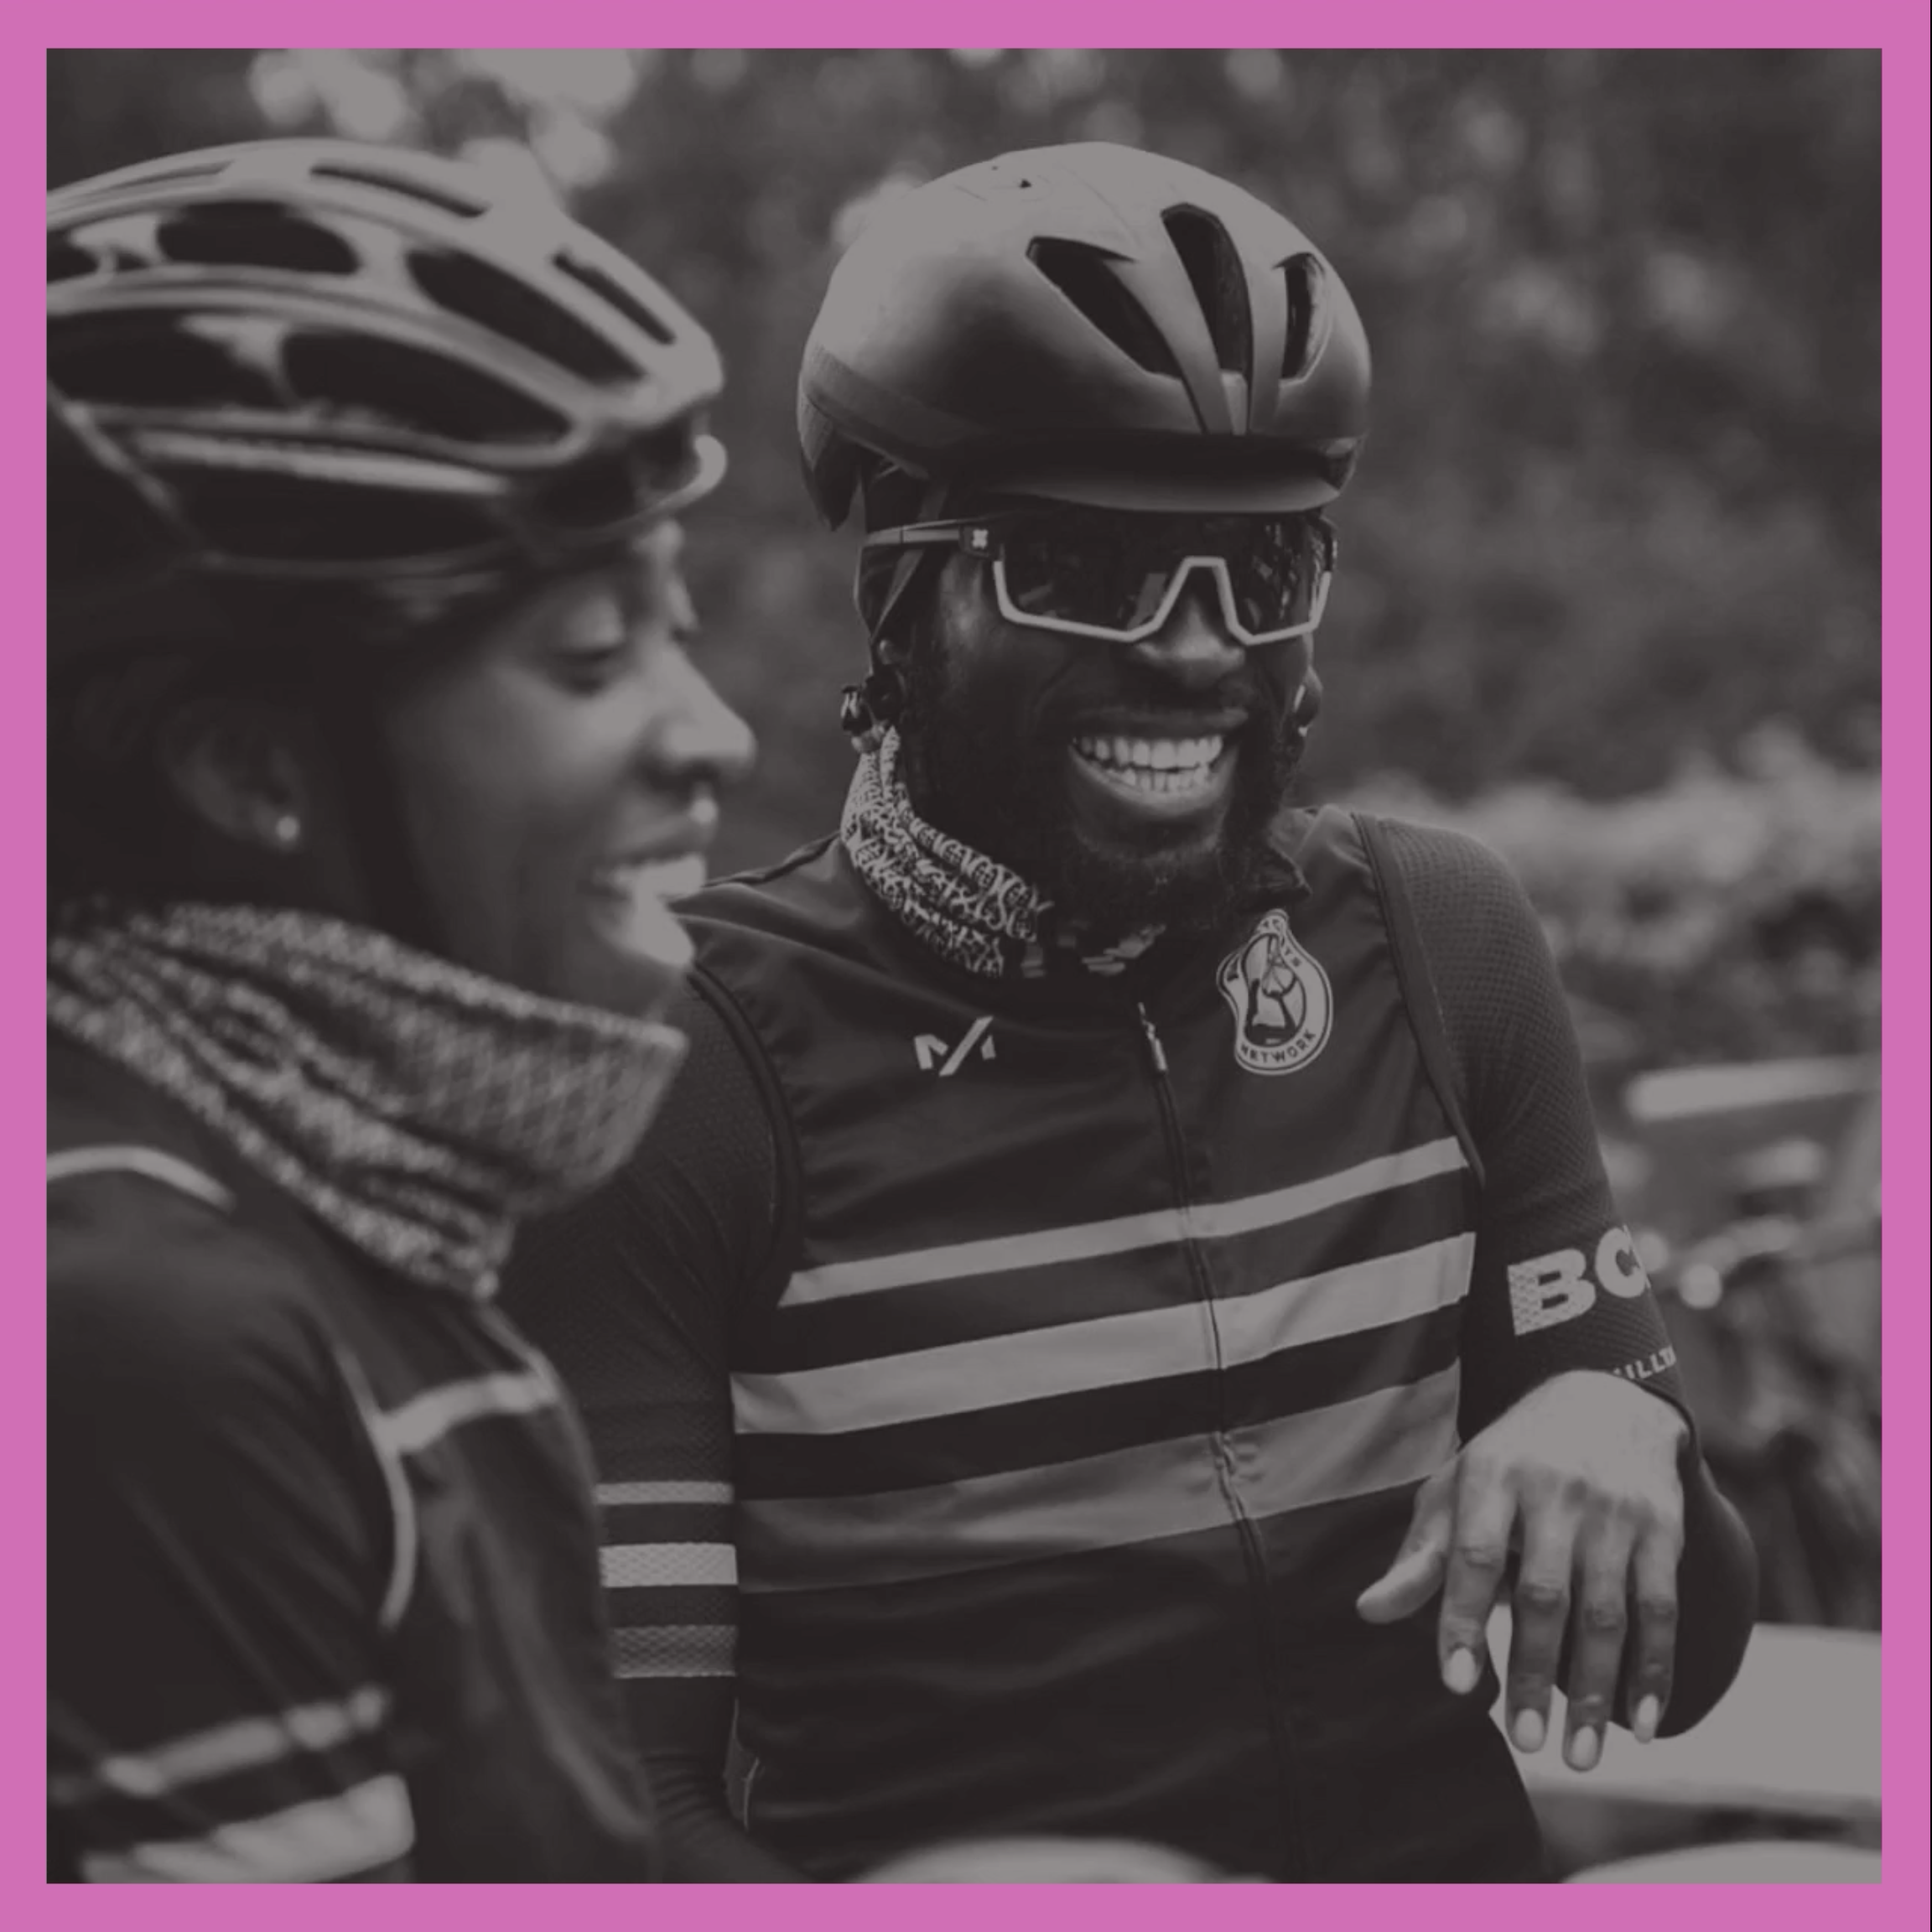 An image of Liyana from the Women's Cycling Network